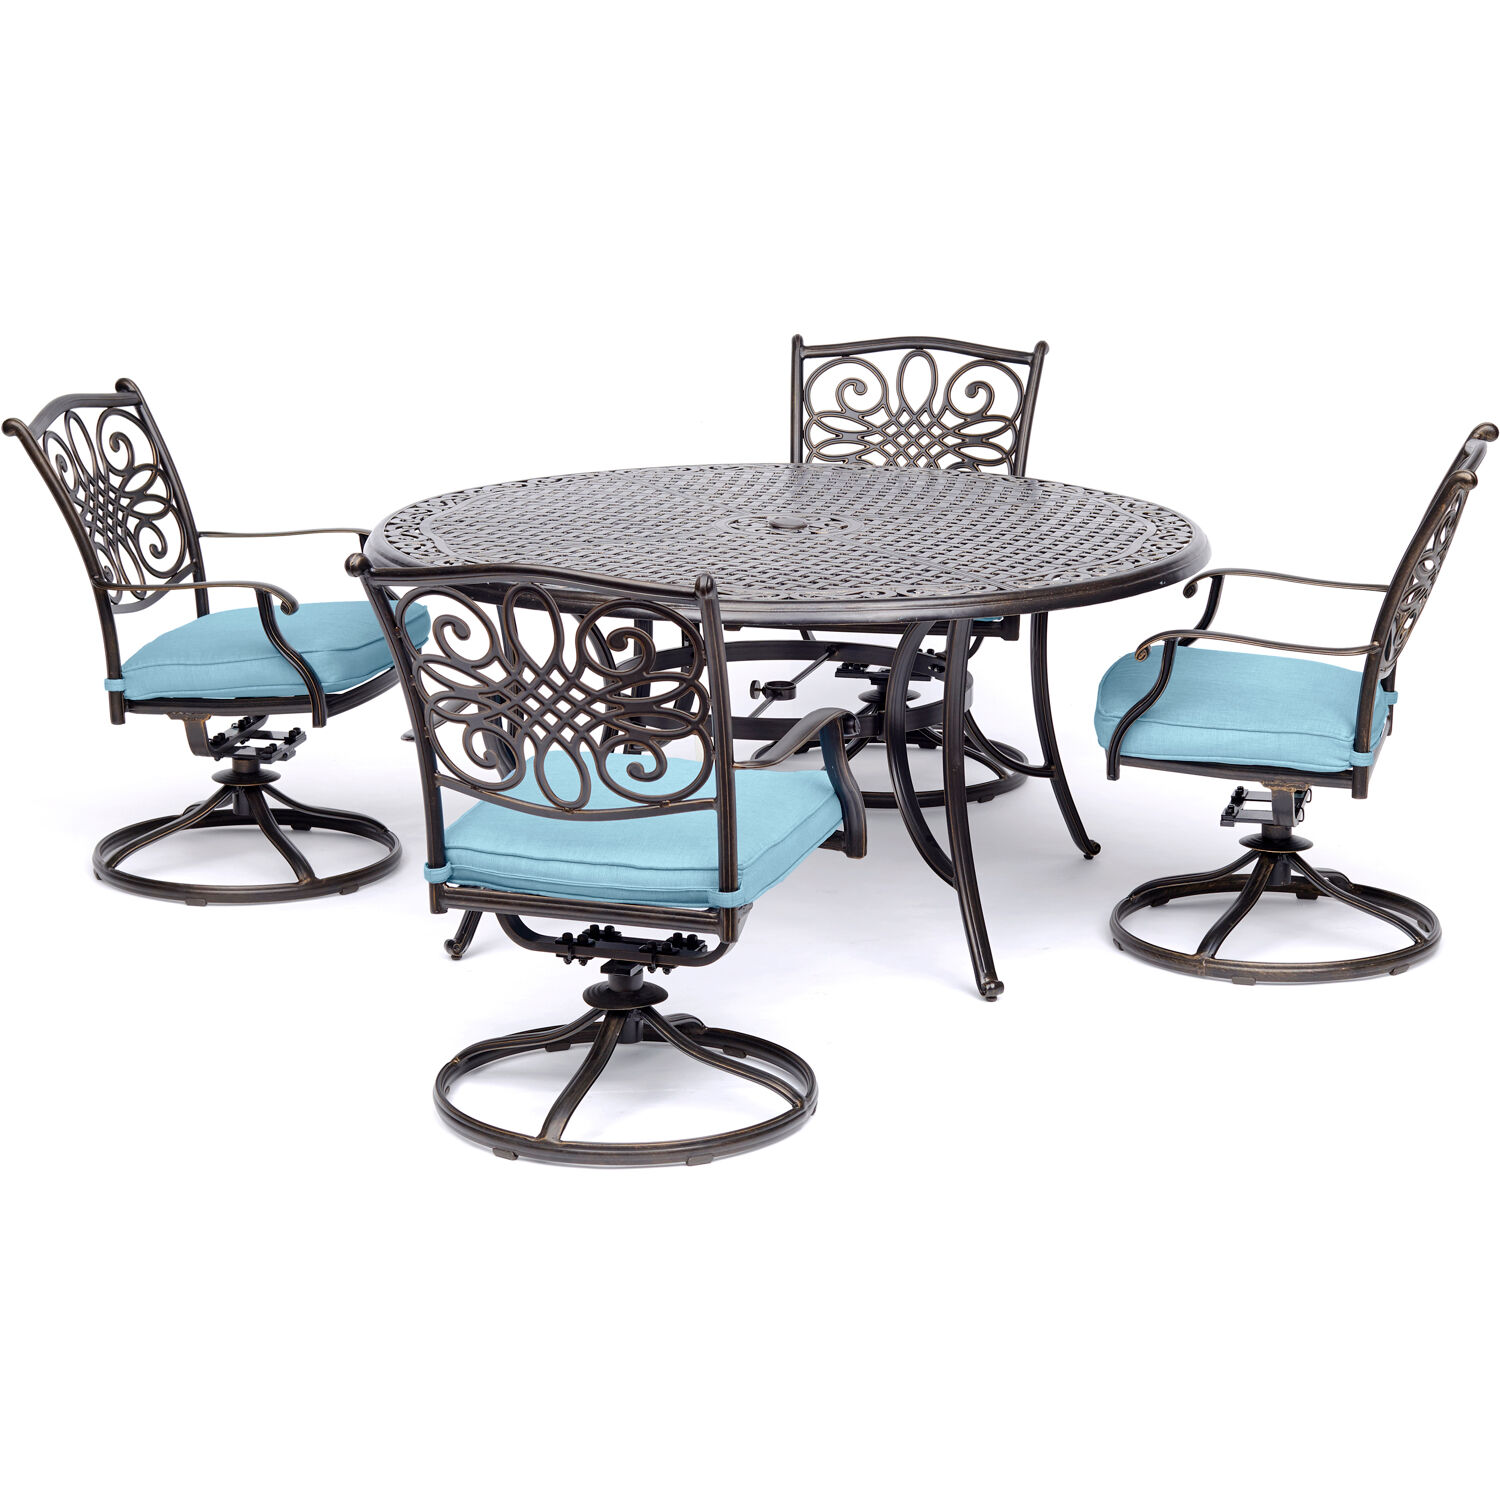 Hanover Outdoor Traditions 5-Piece Dining Set with 4 Swivel Rockers, Ocean Blue